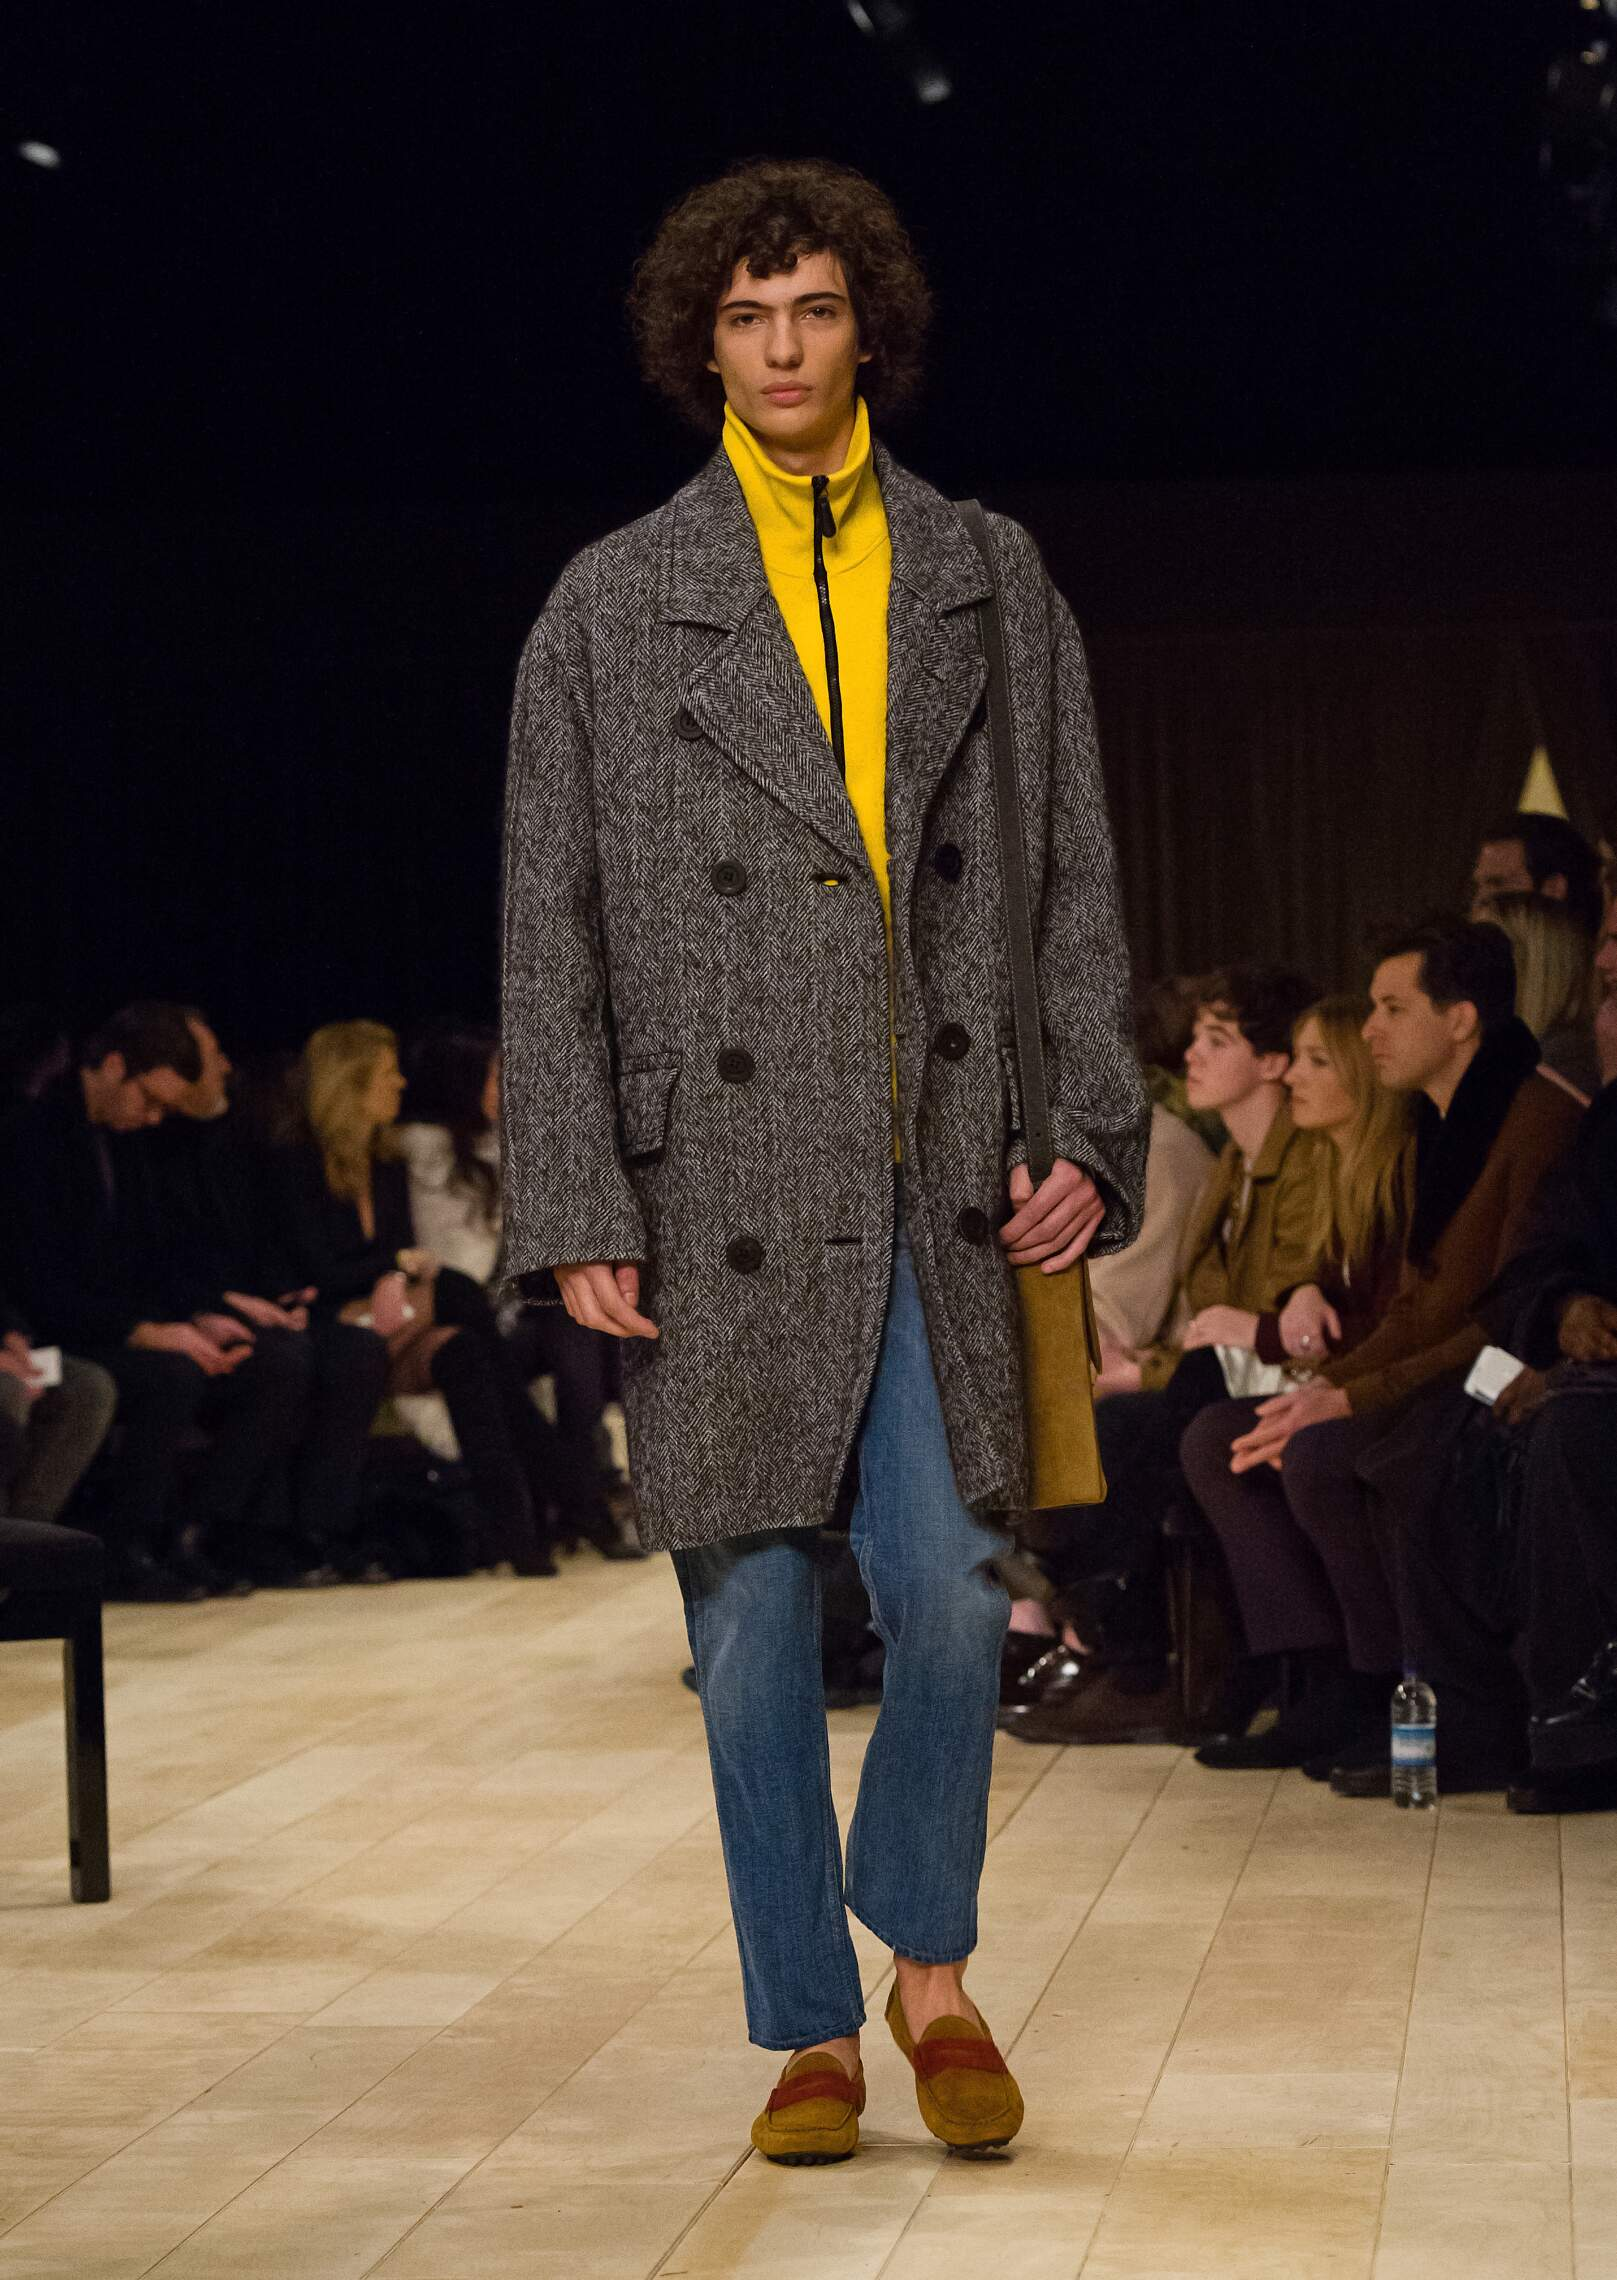 2016 Catwalk Burberry Man Fashion Show Winter